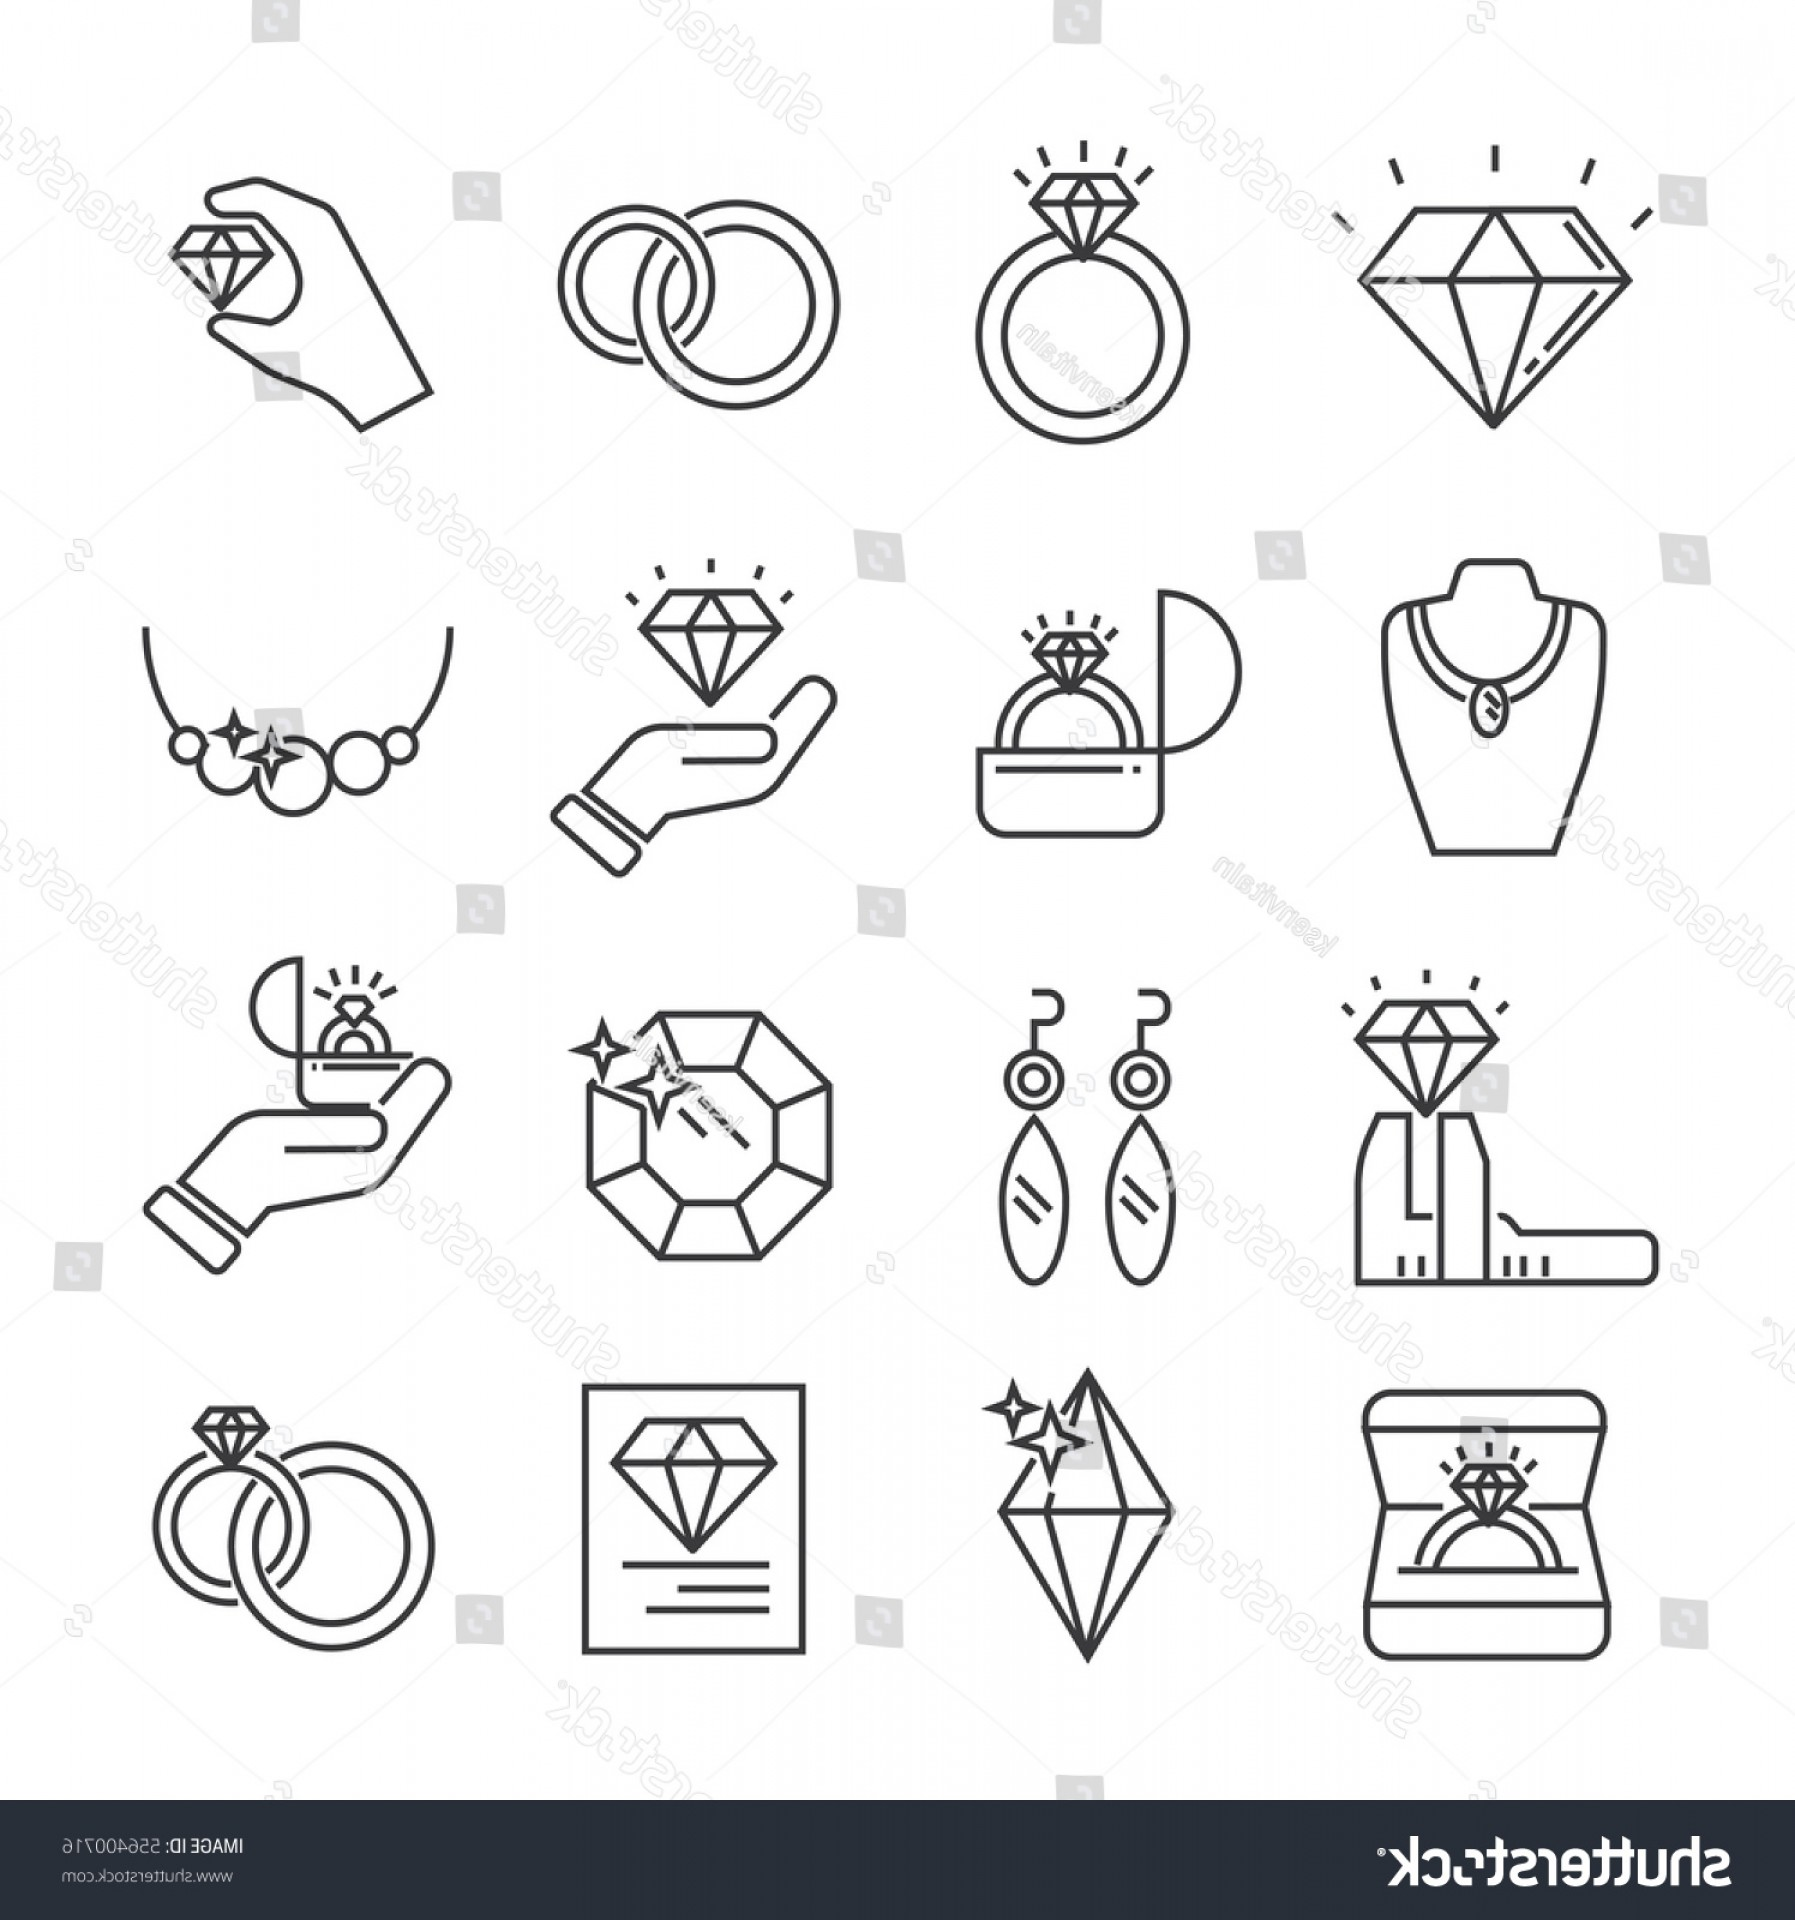 Jewelry Vector Line Art: Set Jewelry Related Vector Line Icons